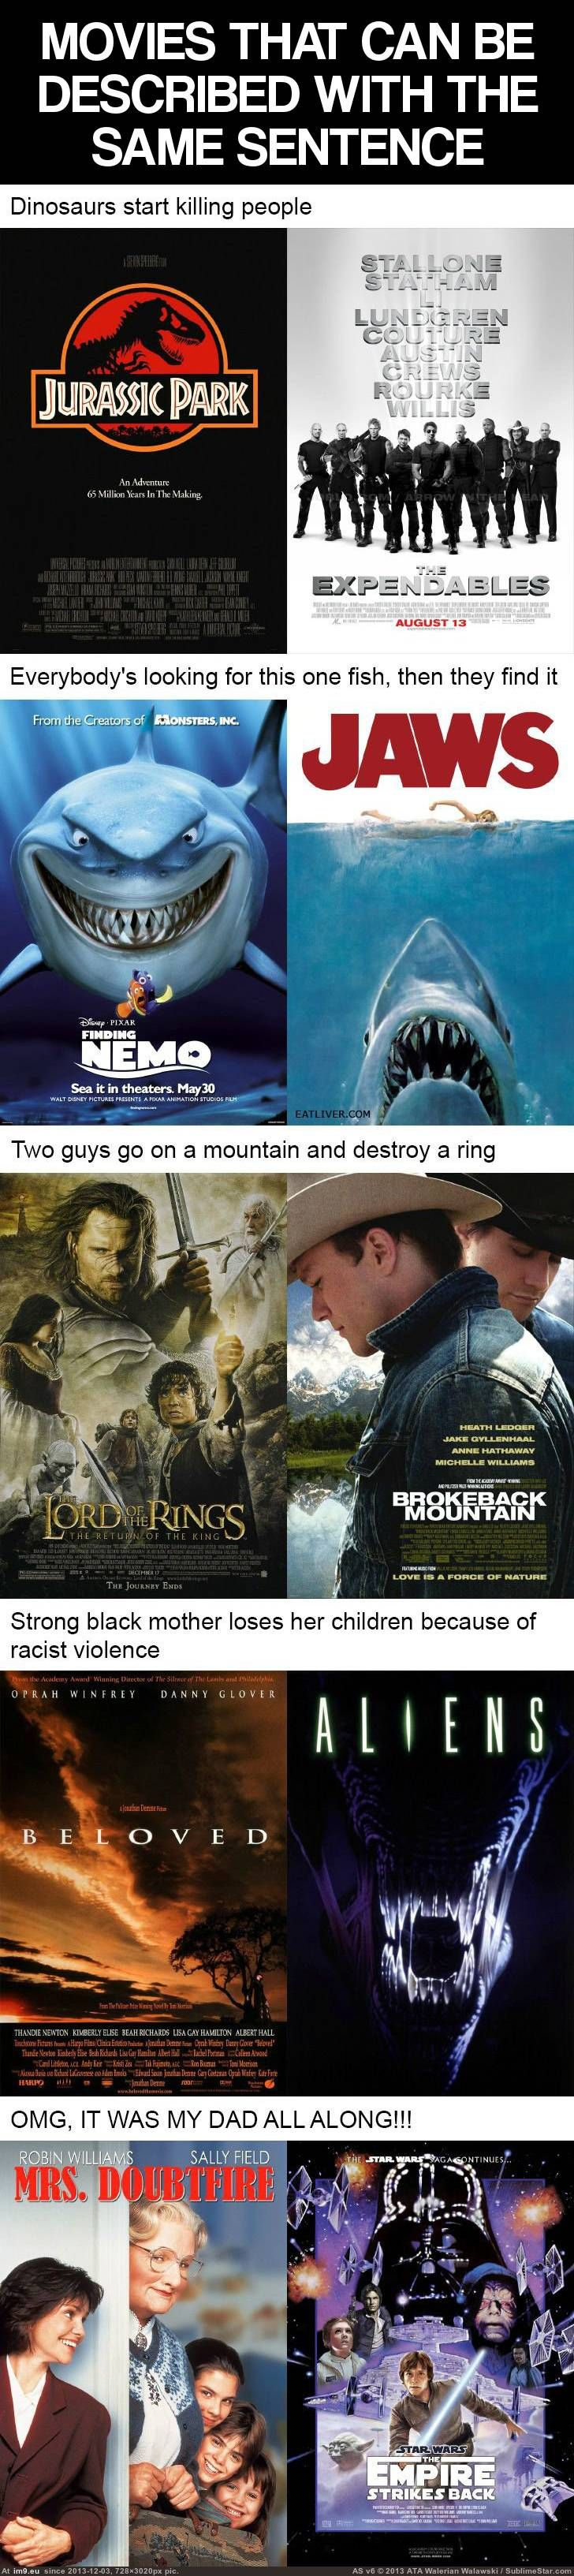 One Sentence, 2 movies.